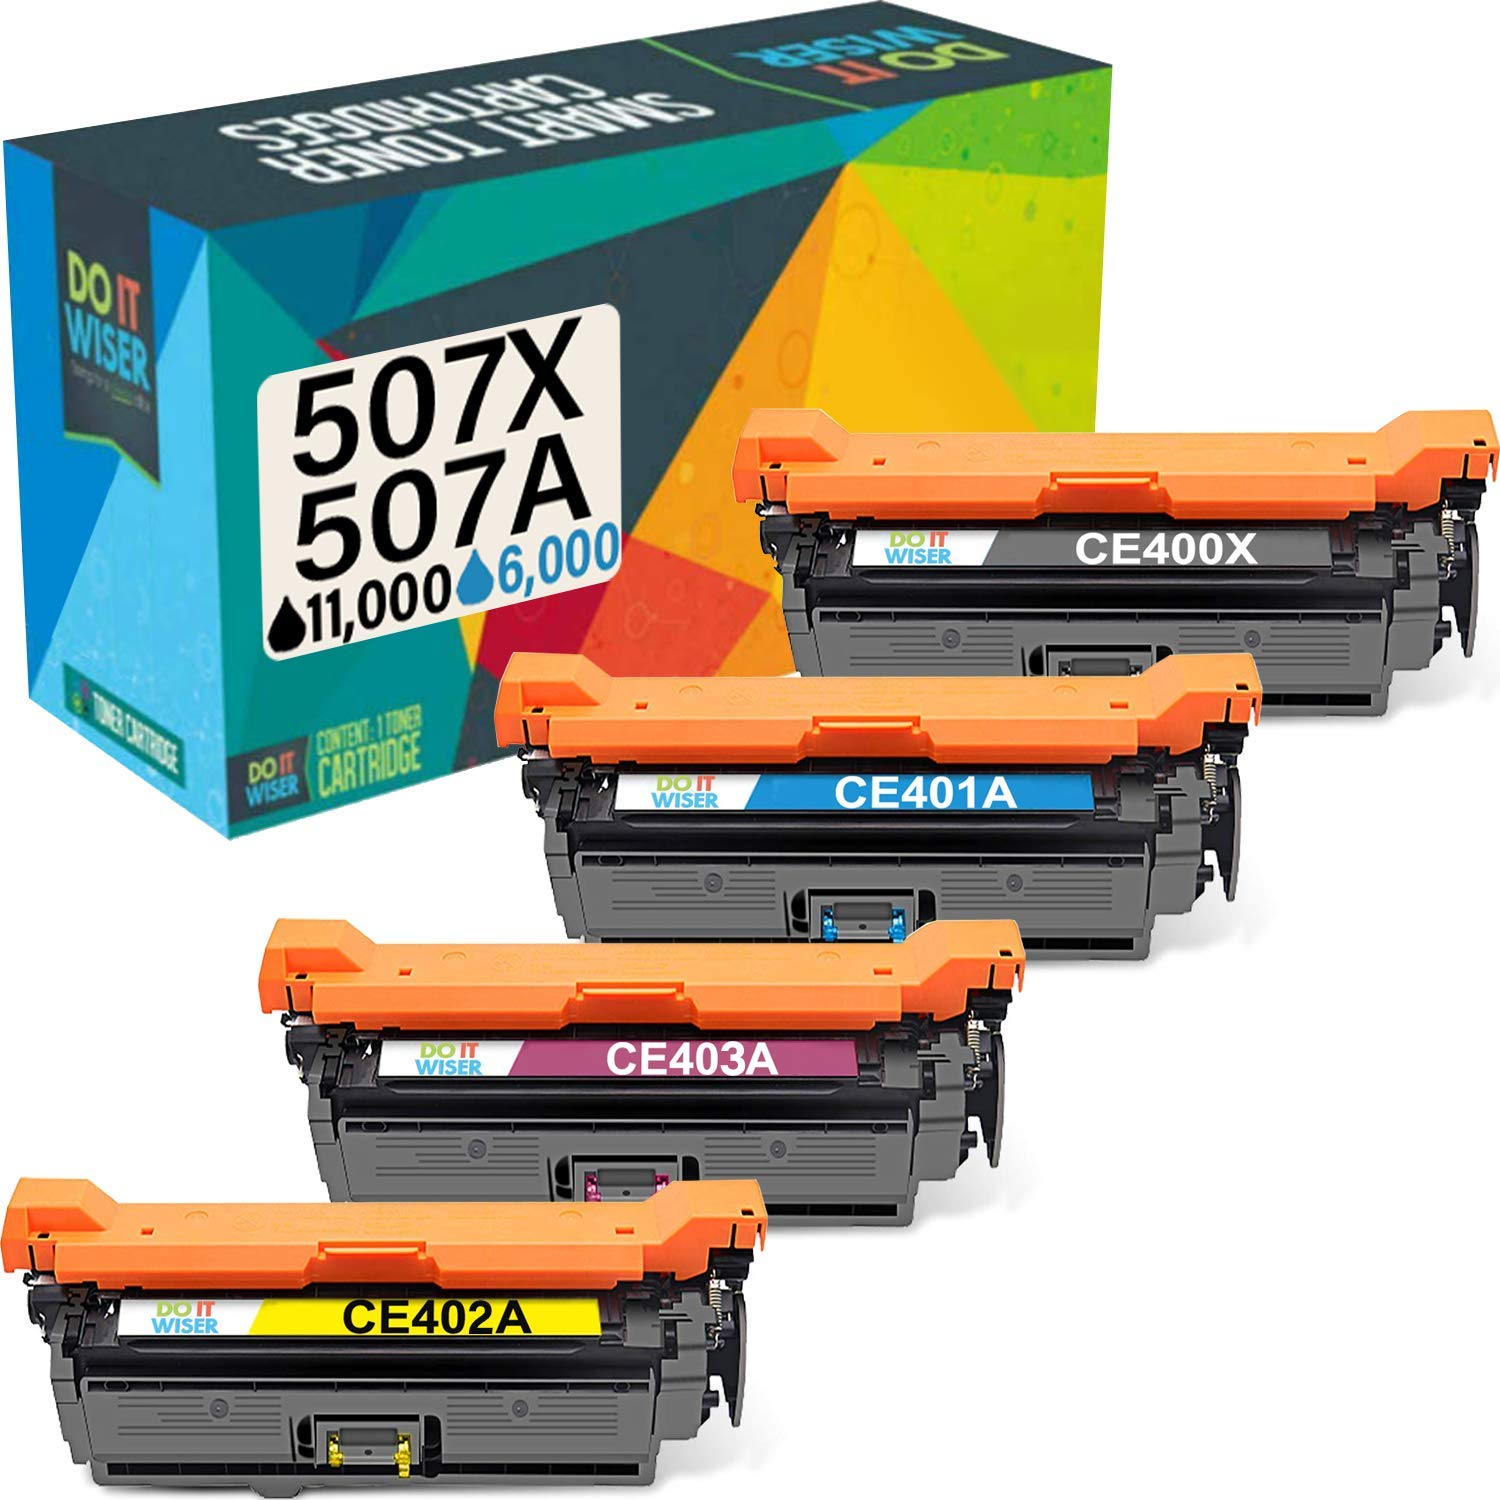 Do it Wiser Remanufactured Toner Cartridge Replacement for HP 507 HP 507X HP 507A CE400X HP Laserjet Enterprise HP M551n M551dn M551xh M570dw M570dn M575c M575dn (Black Cyan Magenta Yellow 4-Pack)